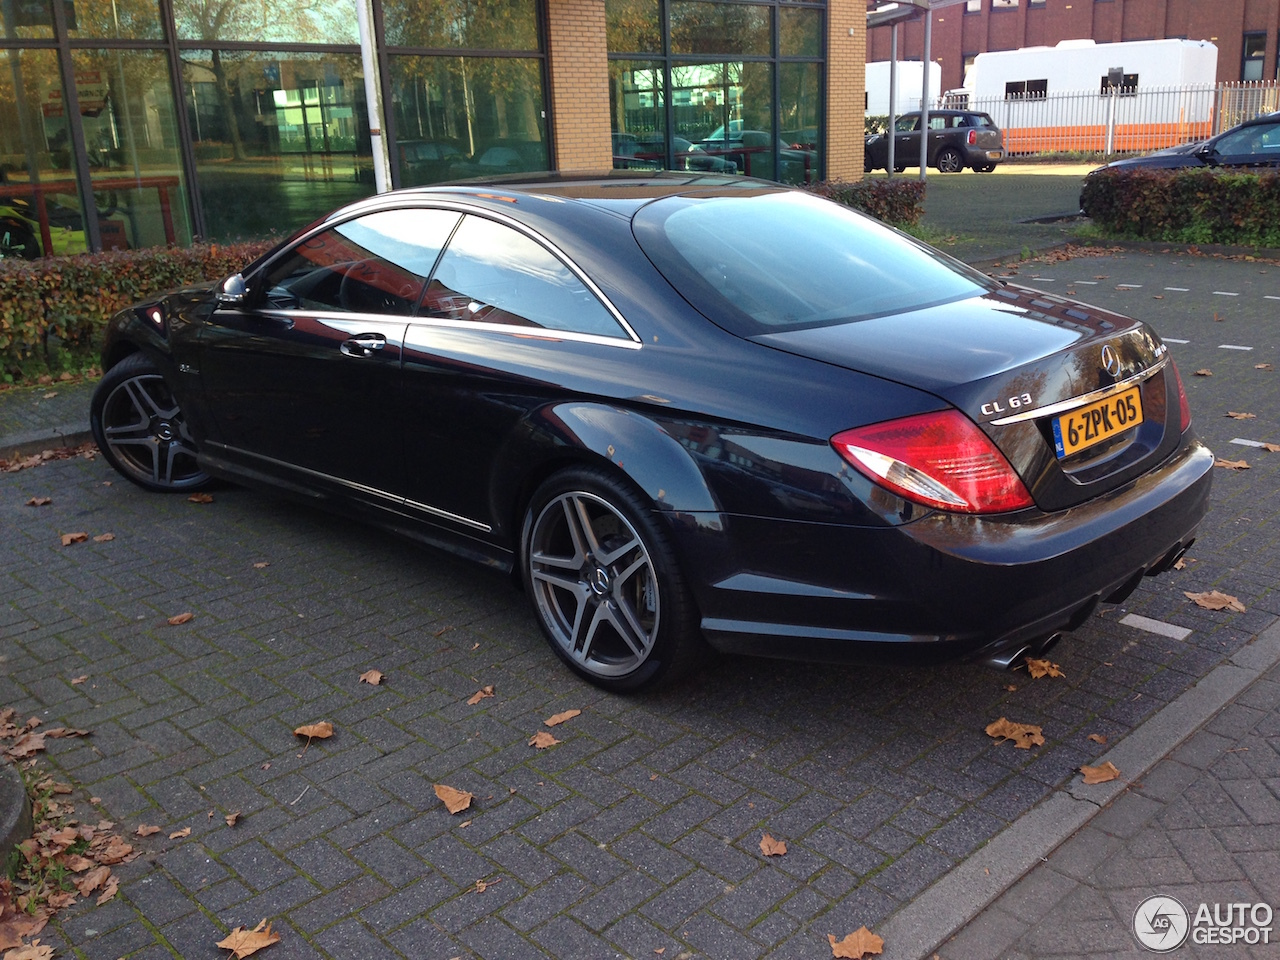 Mercedes benz cl 63 amg c216 25 april 2016 autogespot for Mercedes benz cl 63 amg price